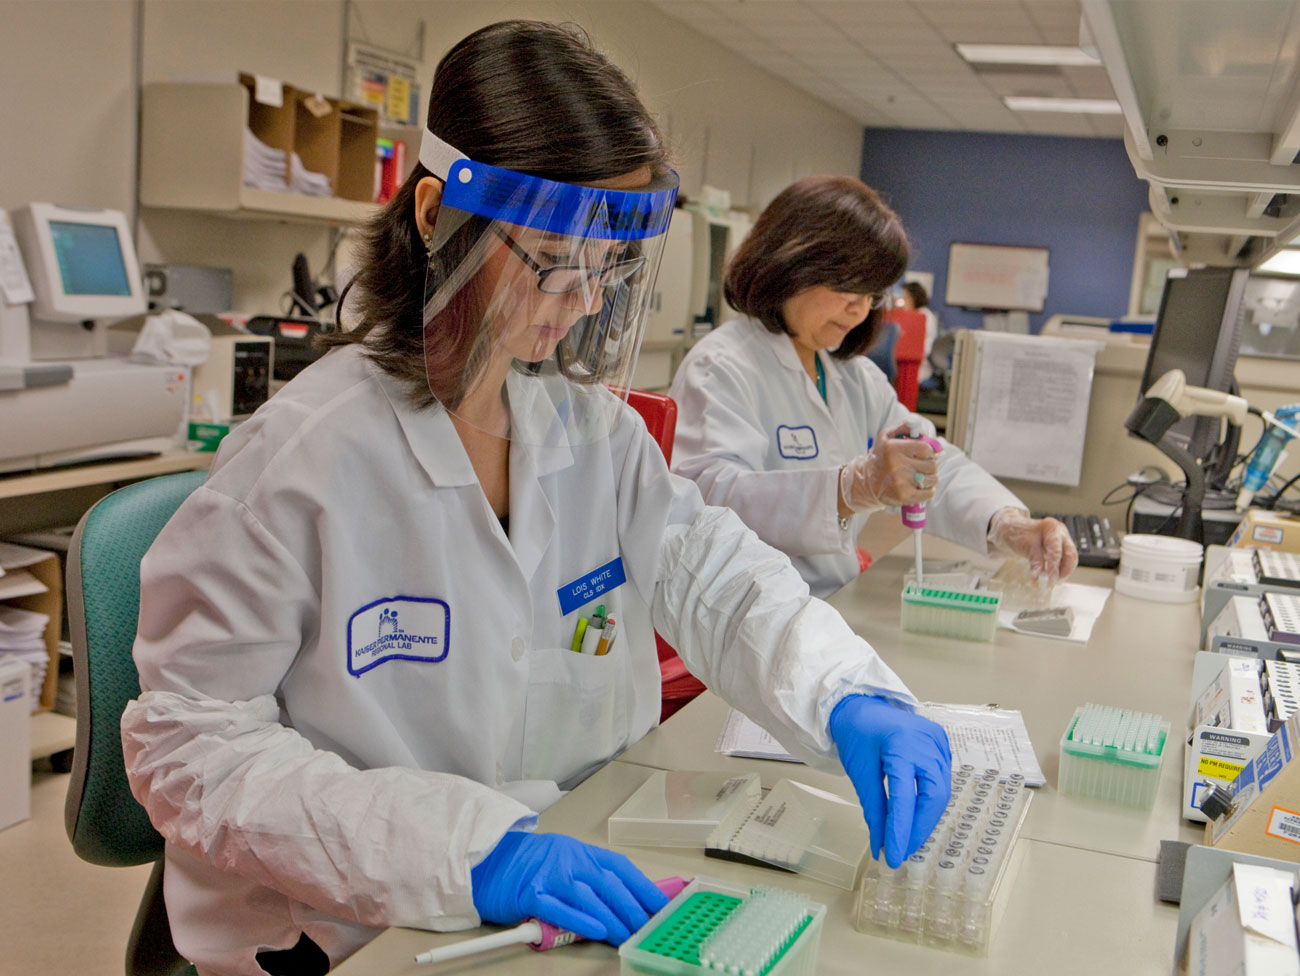 Two female laboratory professionals at work.